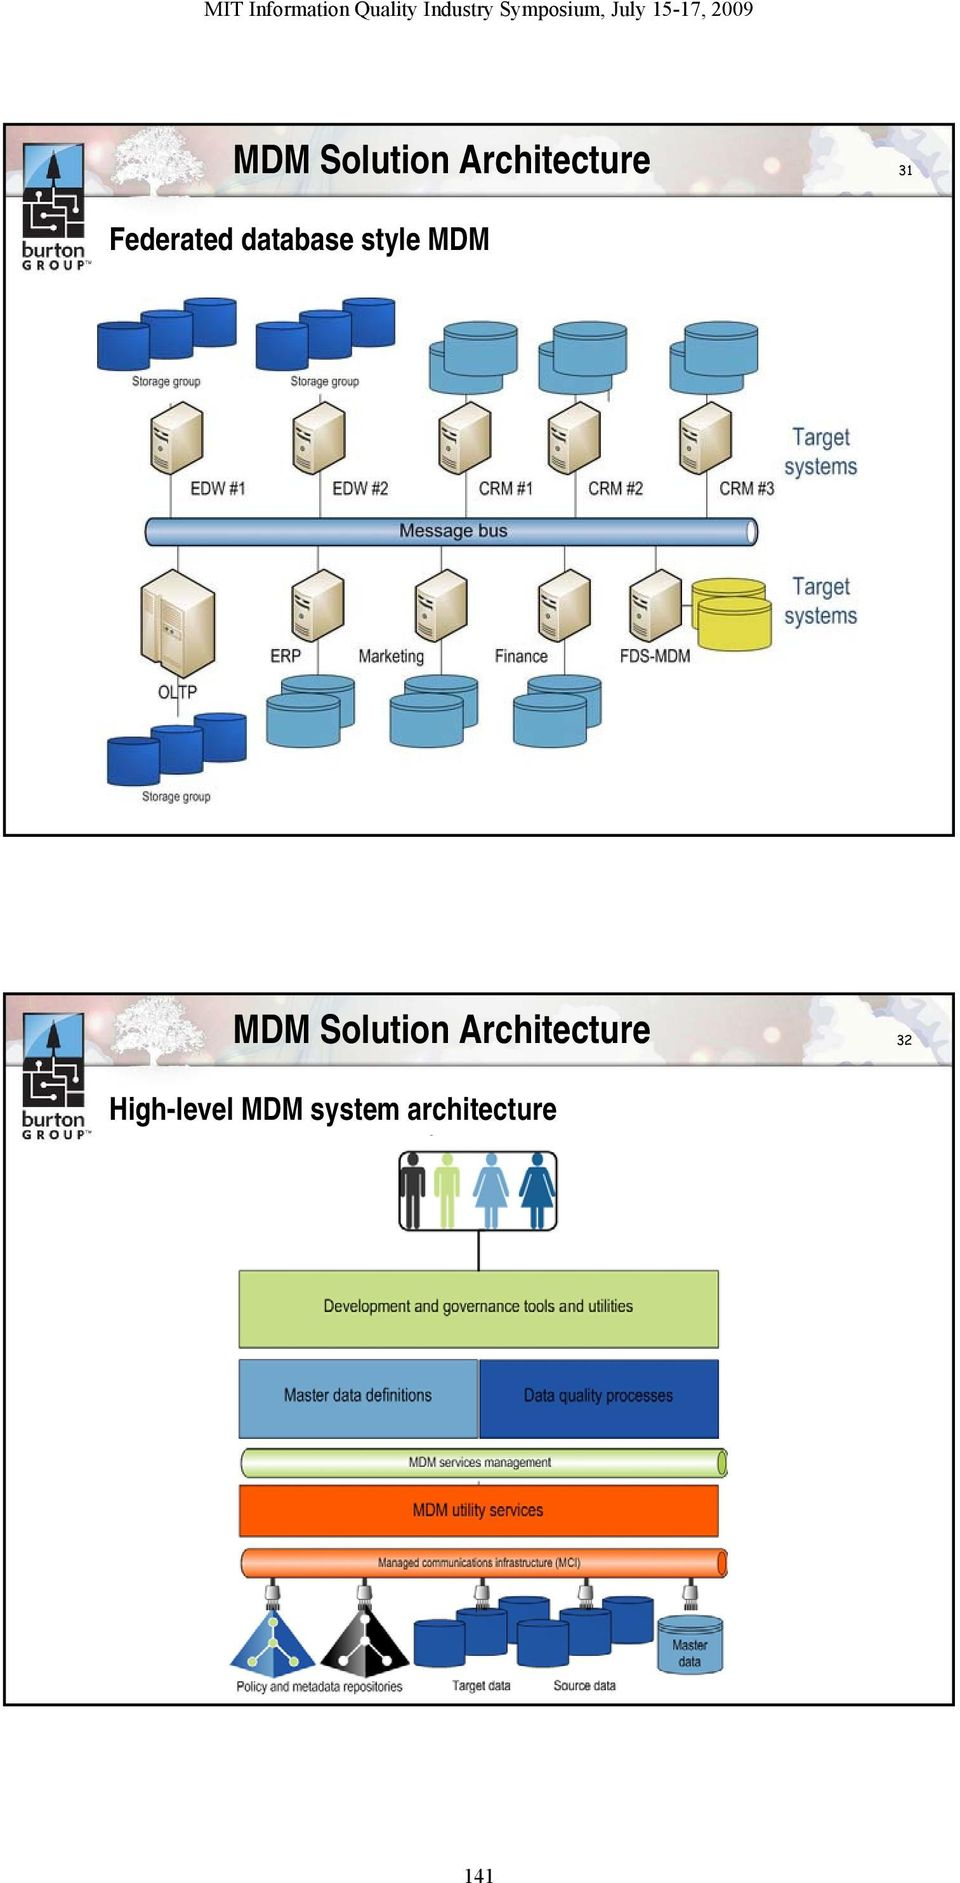 MDM Solution Architecture 32